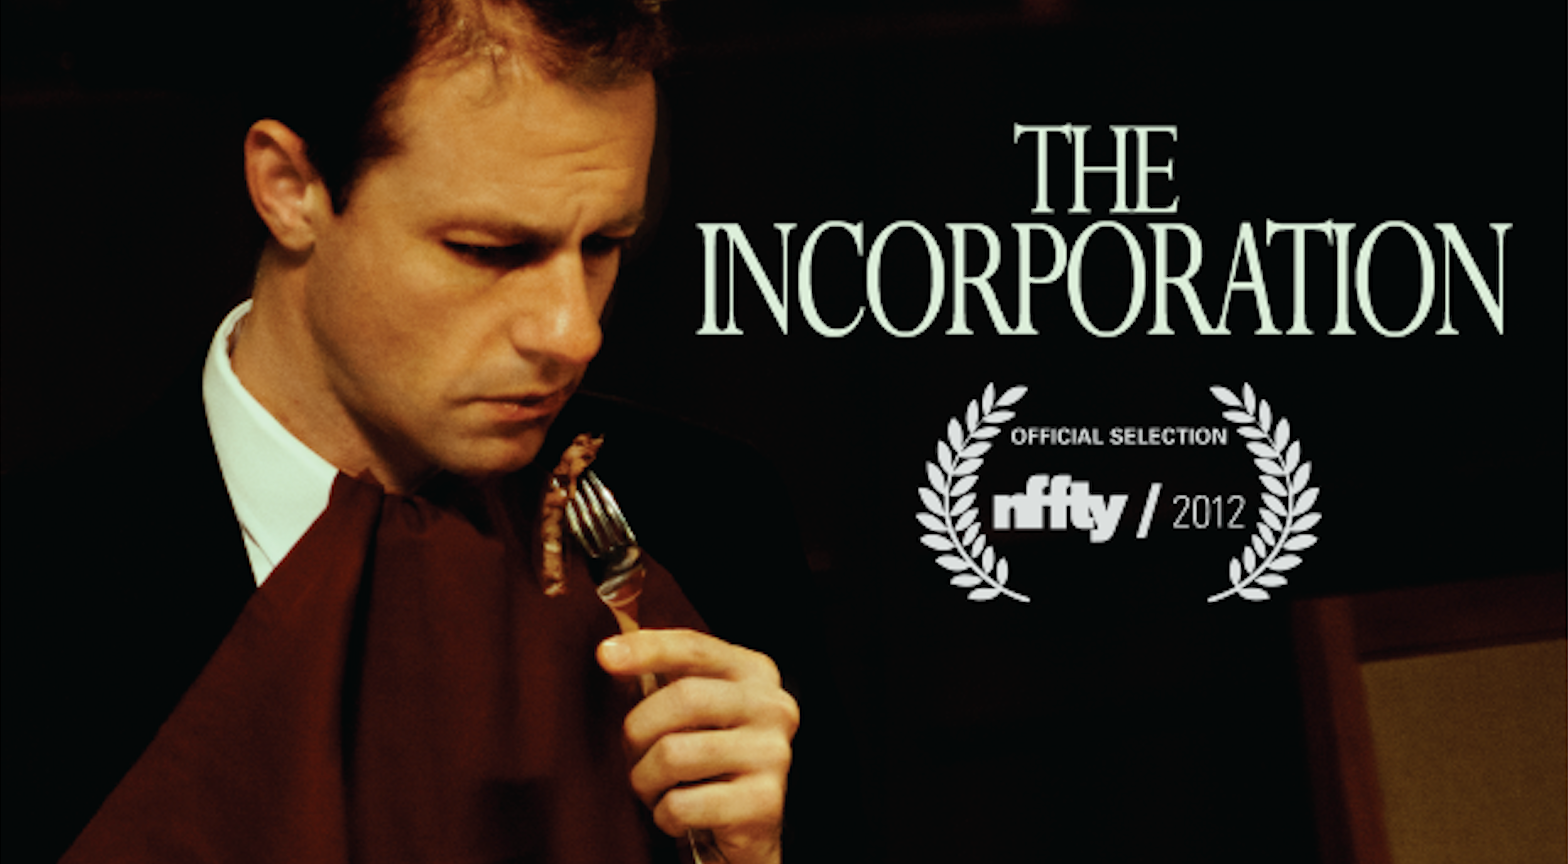 THE INCORPORATION - Hosted by Tribeca + Maker's The Picture Show https://www.youtube.com/watch?v=KzUxgK7Hlu0Audience Award Winner of National Film Festival of Talented YouthAwarded in CET / FAMU RetrospectiveFilmed in the 35mm Program at FAMU / CETDirected & Written by Aly Migliori & Hannah LevyEdited by Aly Migliori